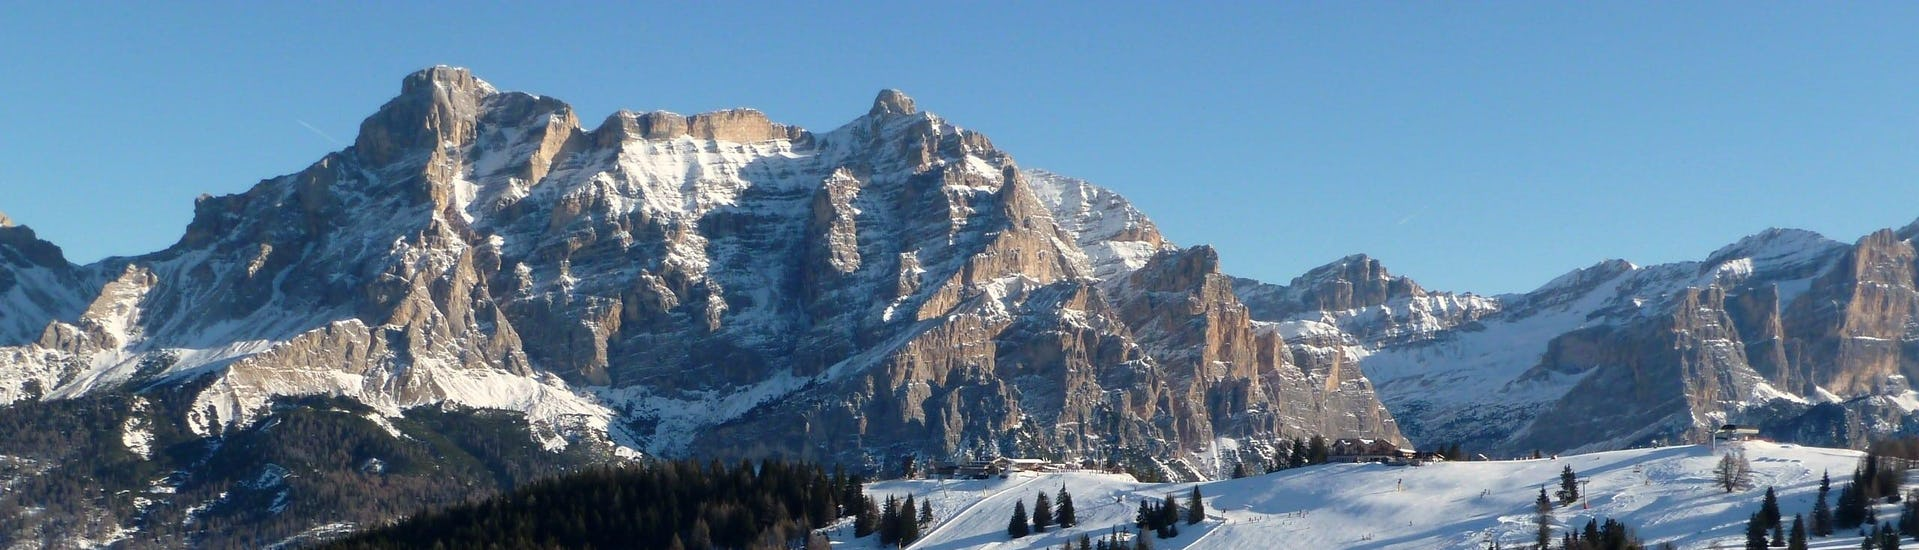 View over the sunny mountain landscape while learning to ski with the ski schools in Corvara.